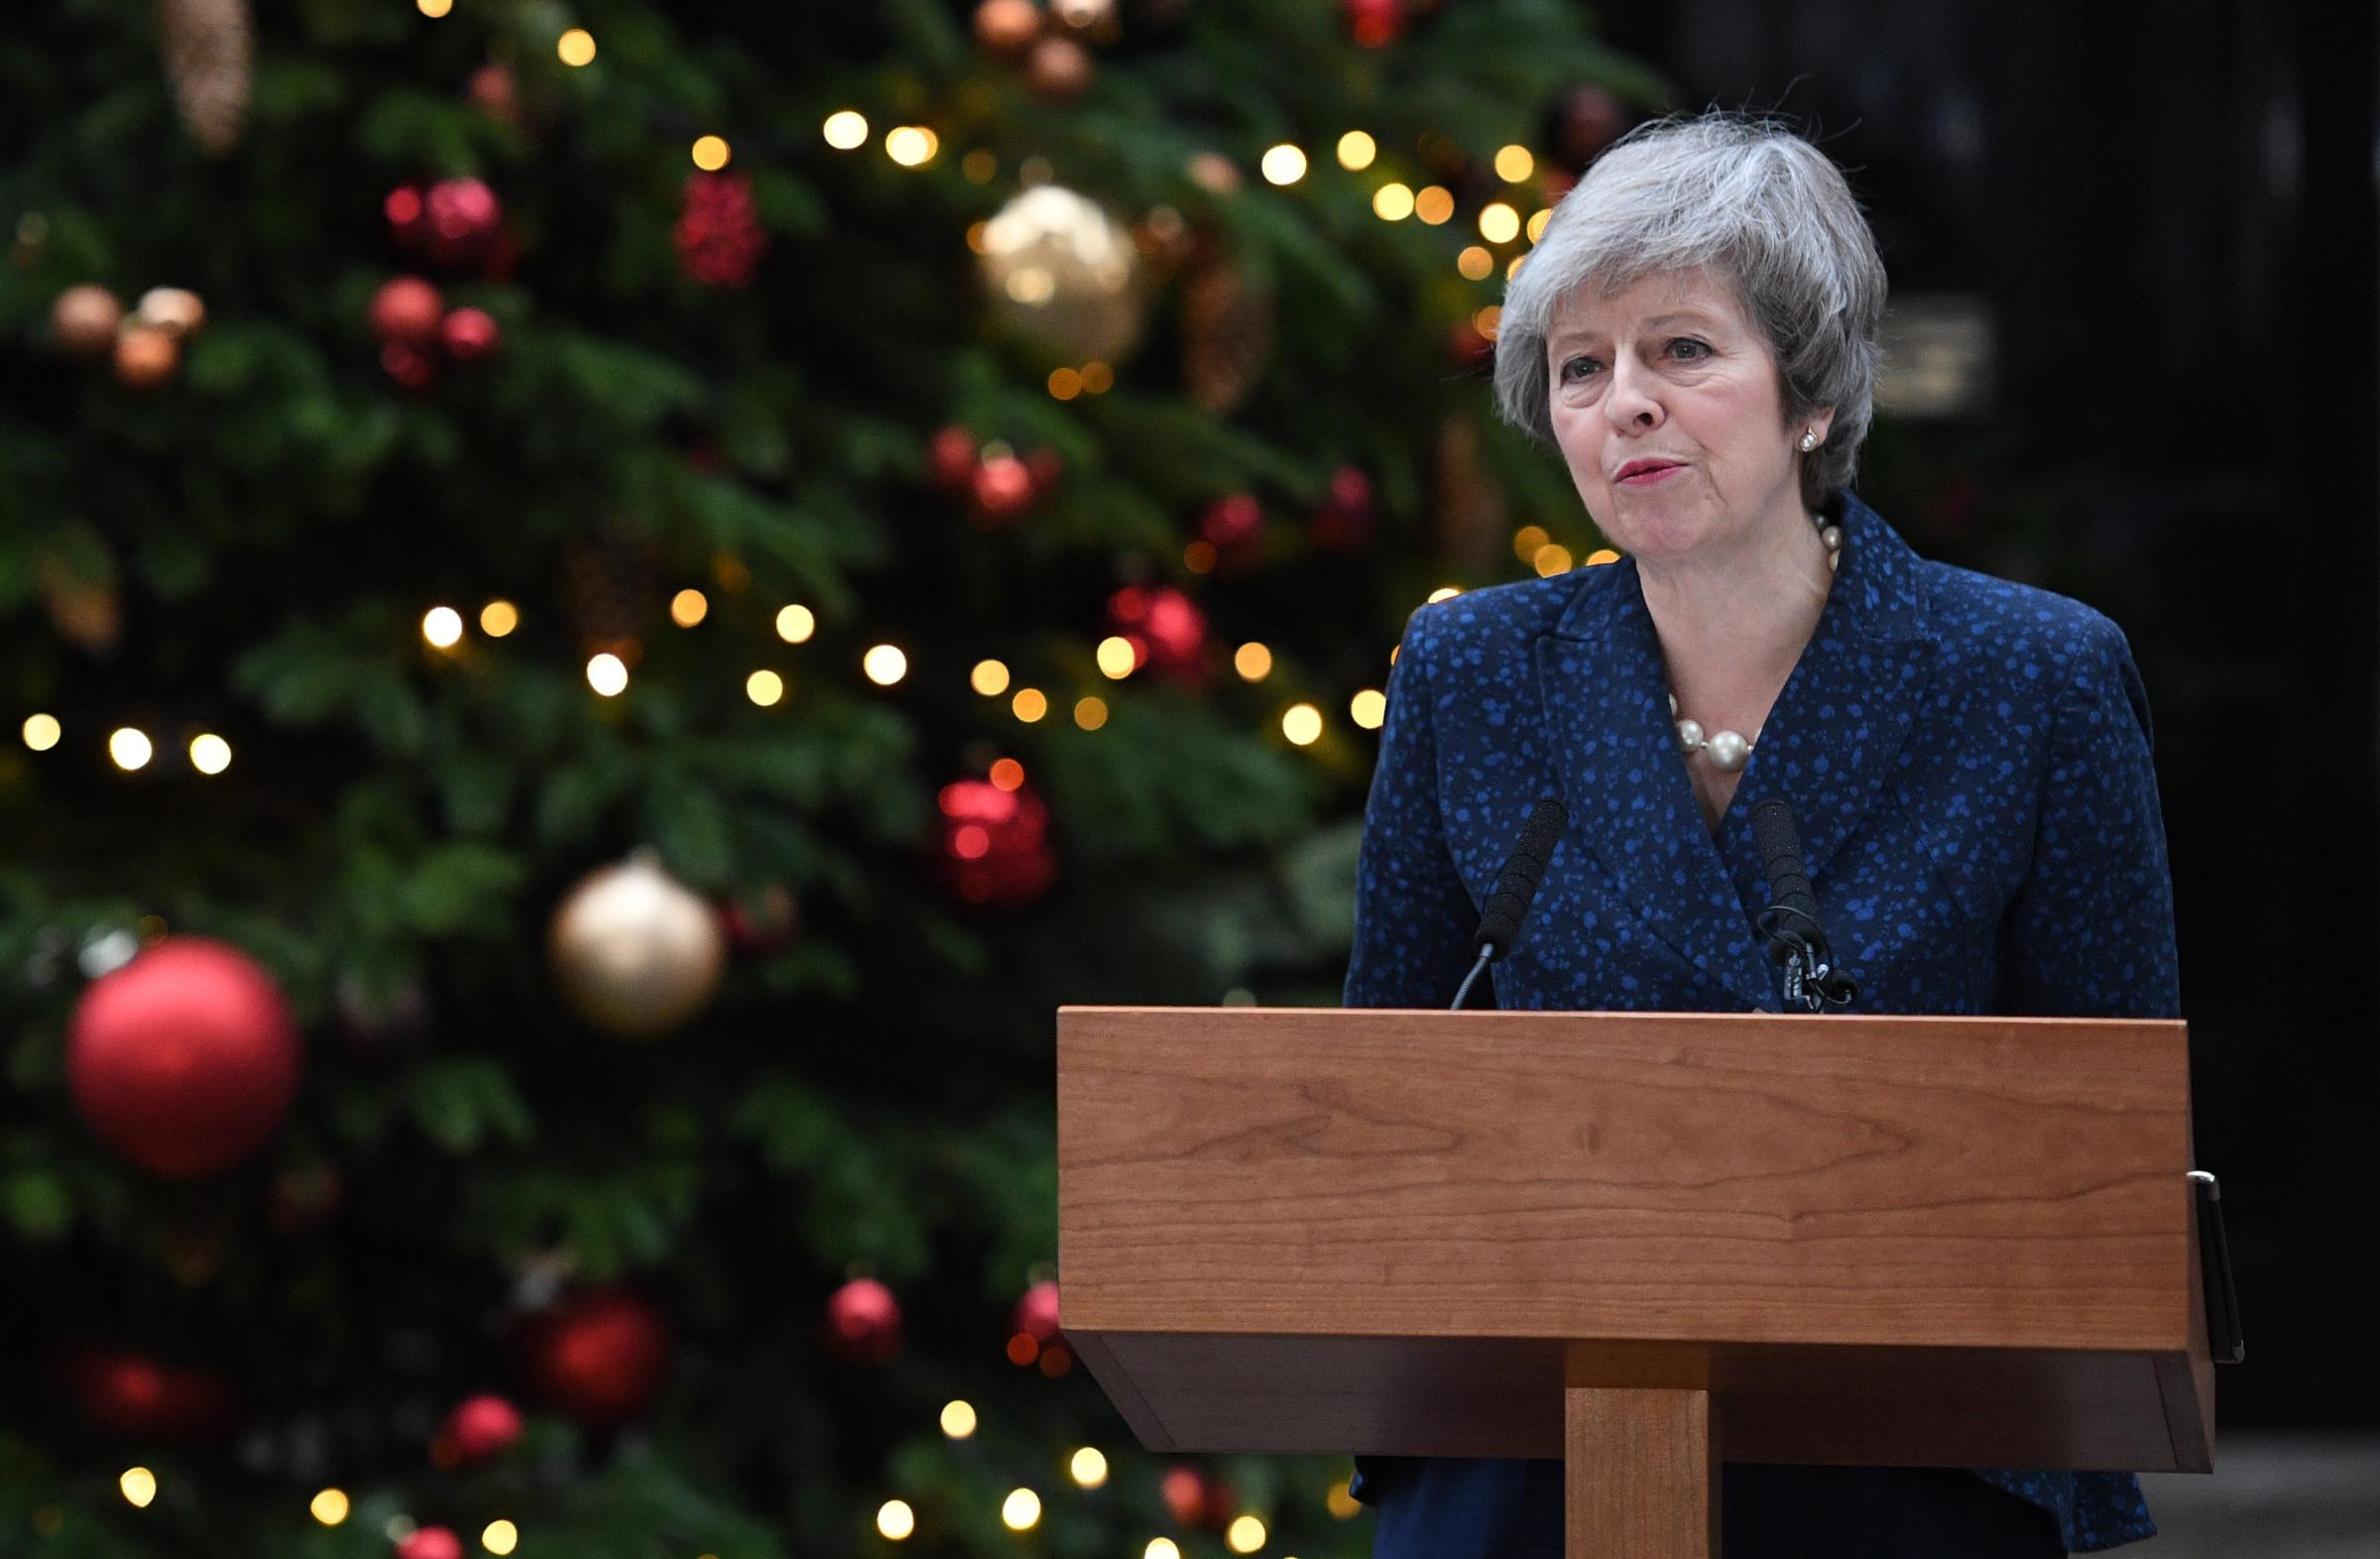 Theresa May's position in irrevocably weakened both at home and on the EU stage